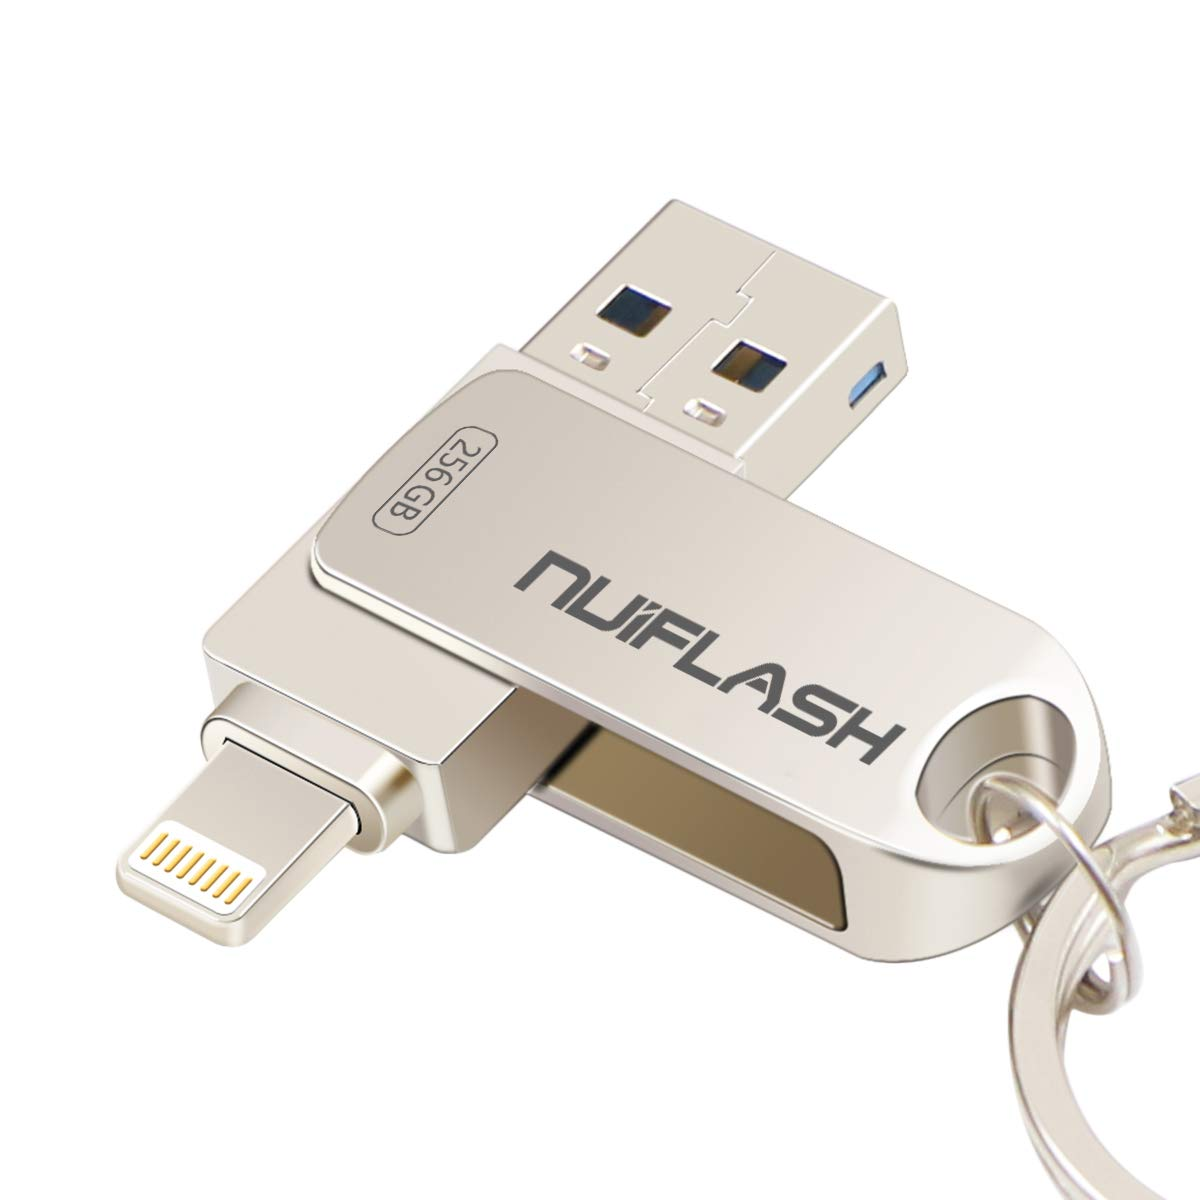 nuiflash USB 3.0 External Storage